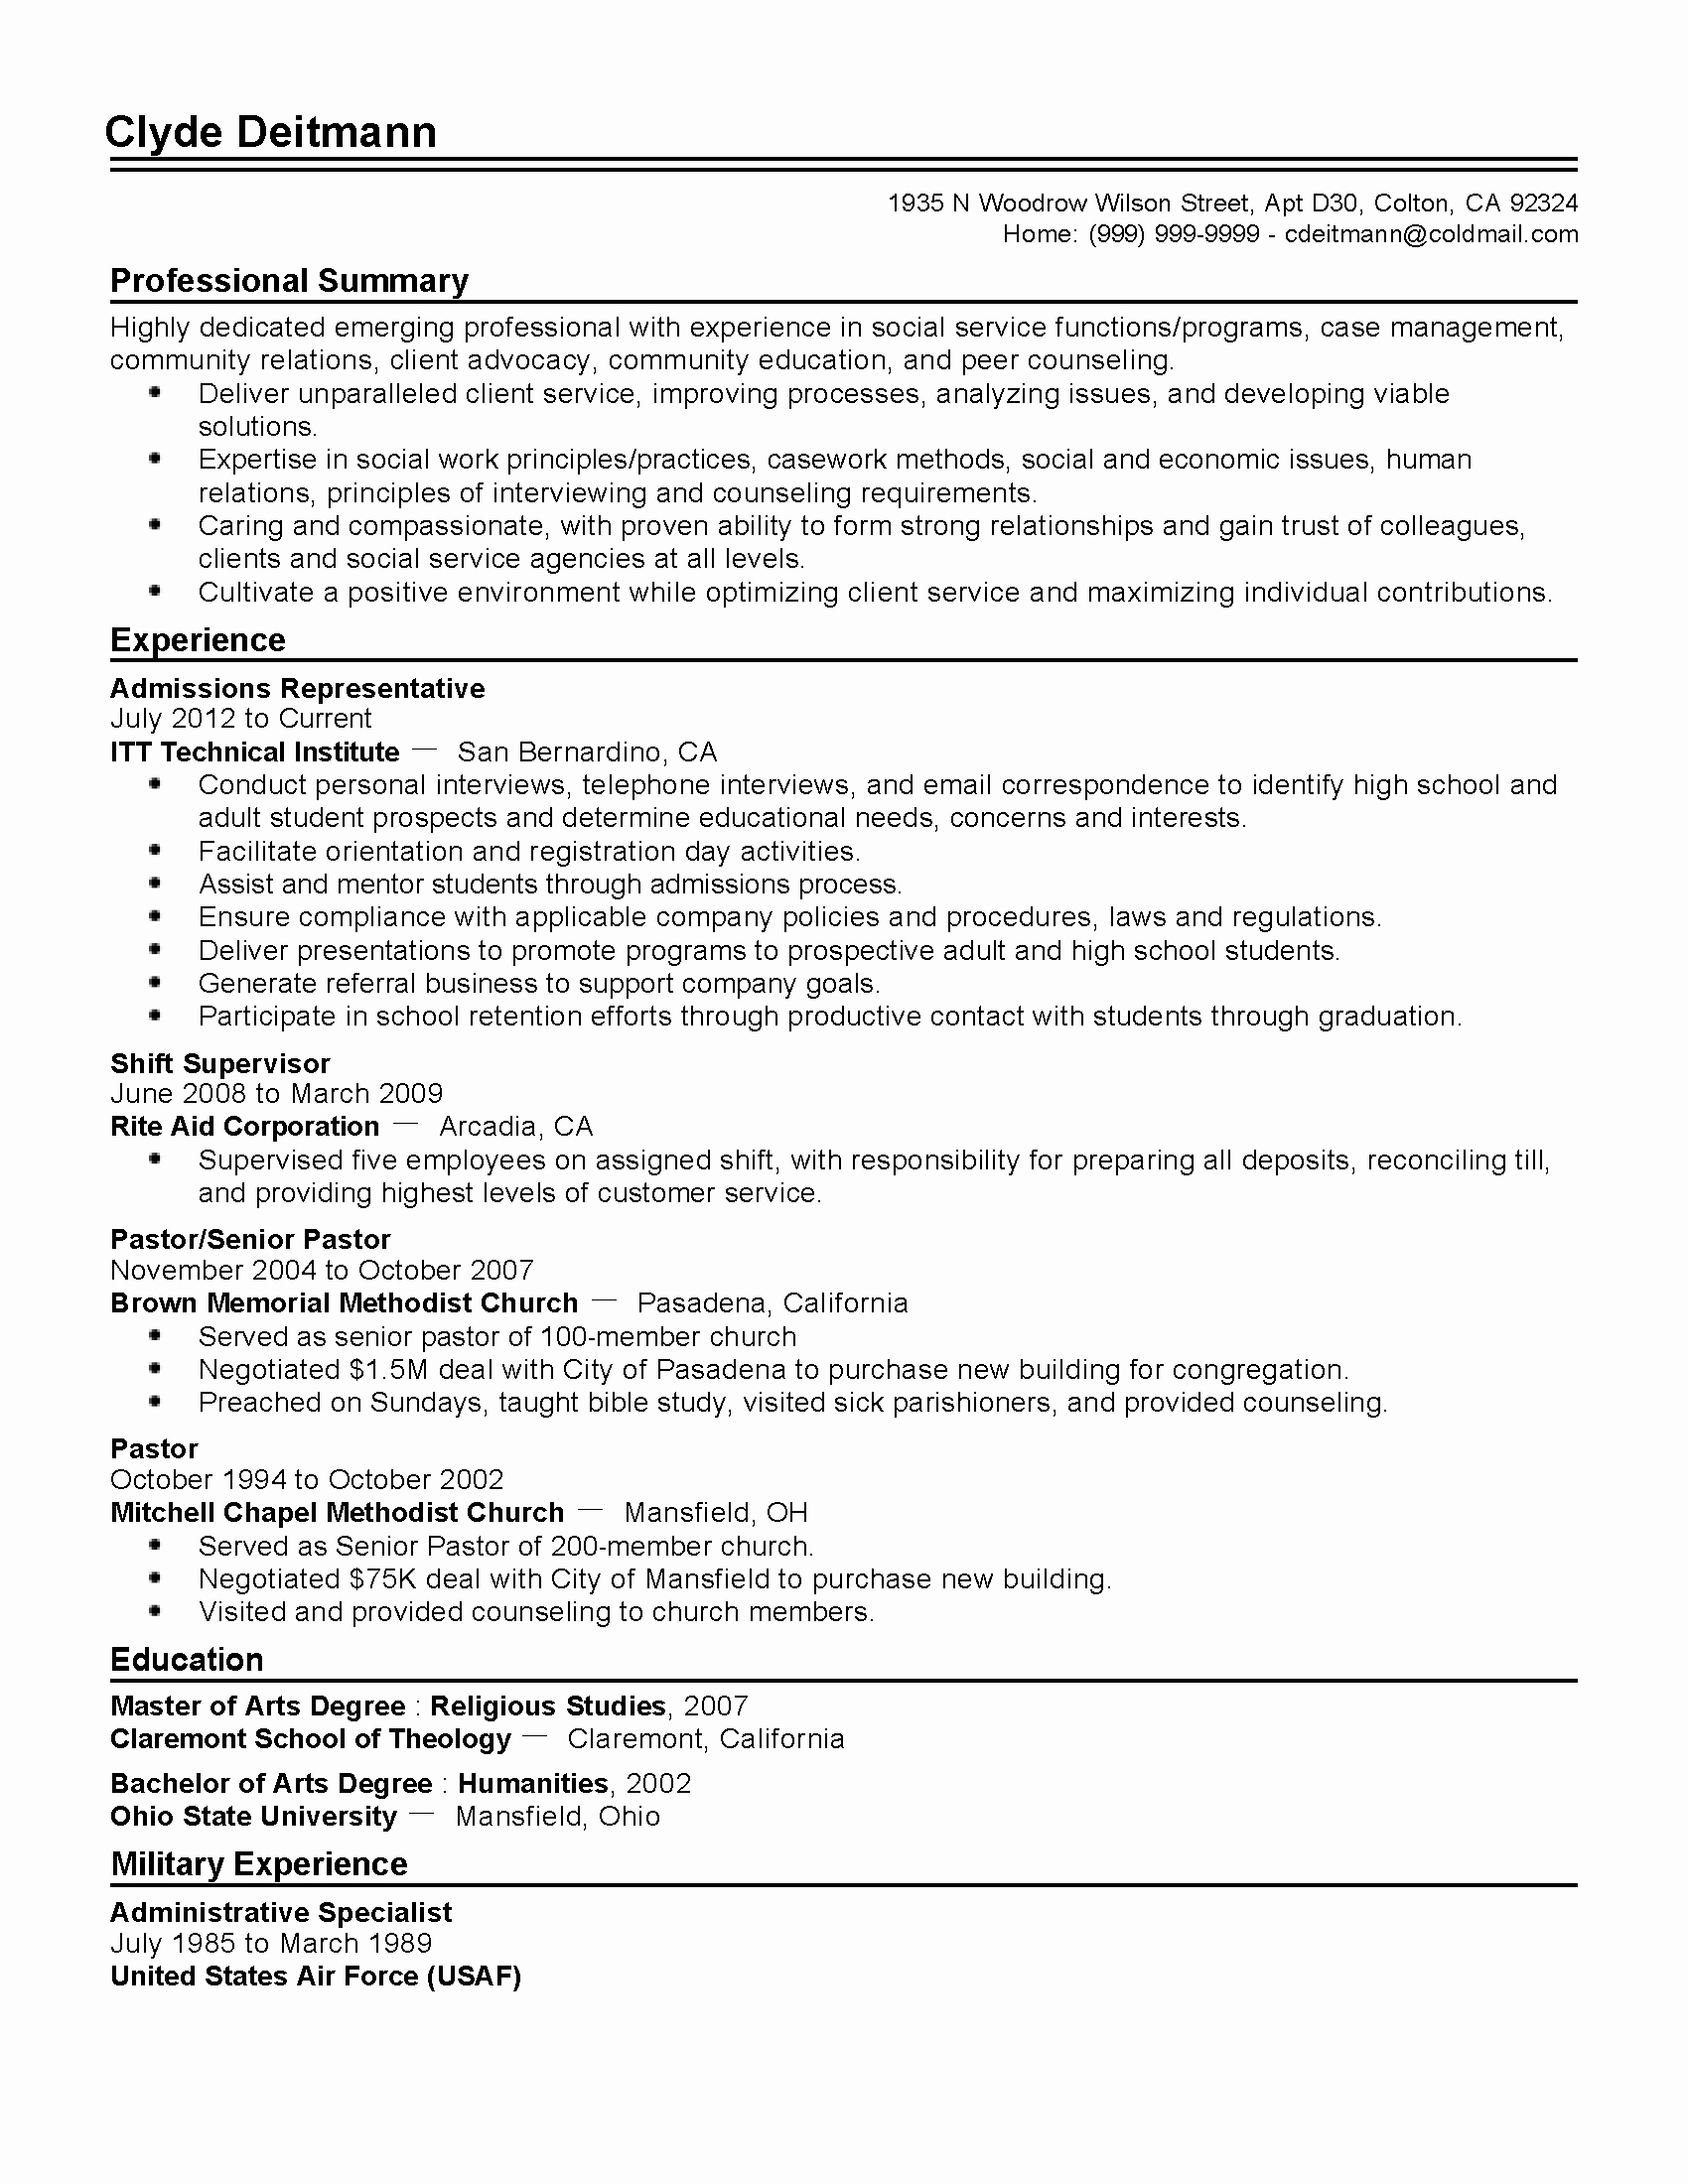 College App Resume Template Best Of Professional Admissions Representative Templates to